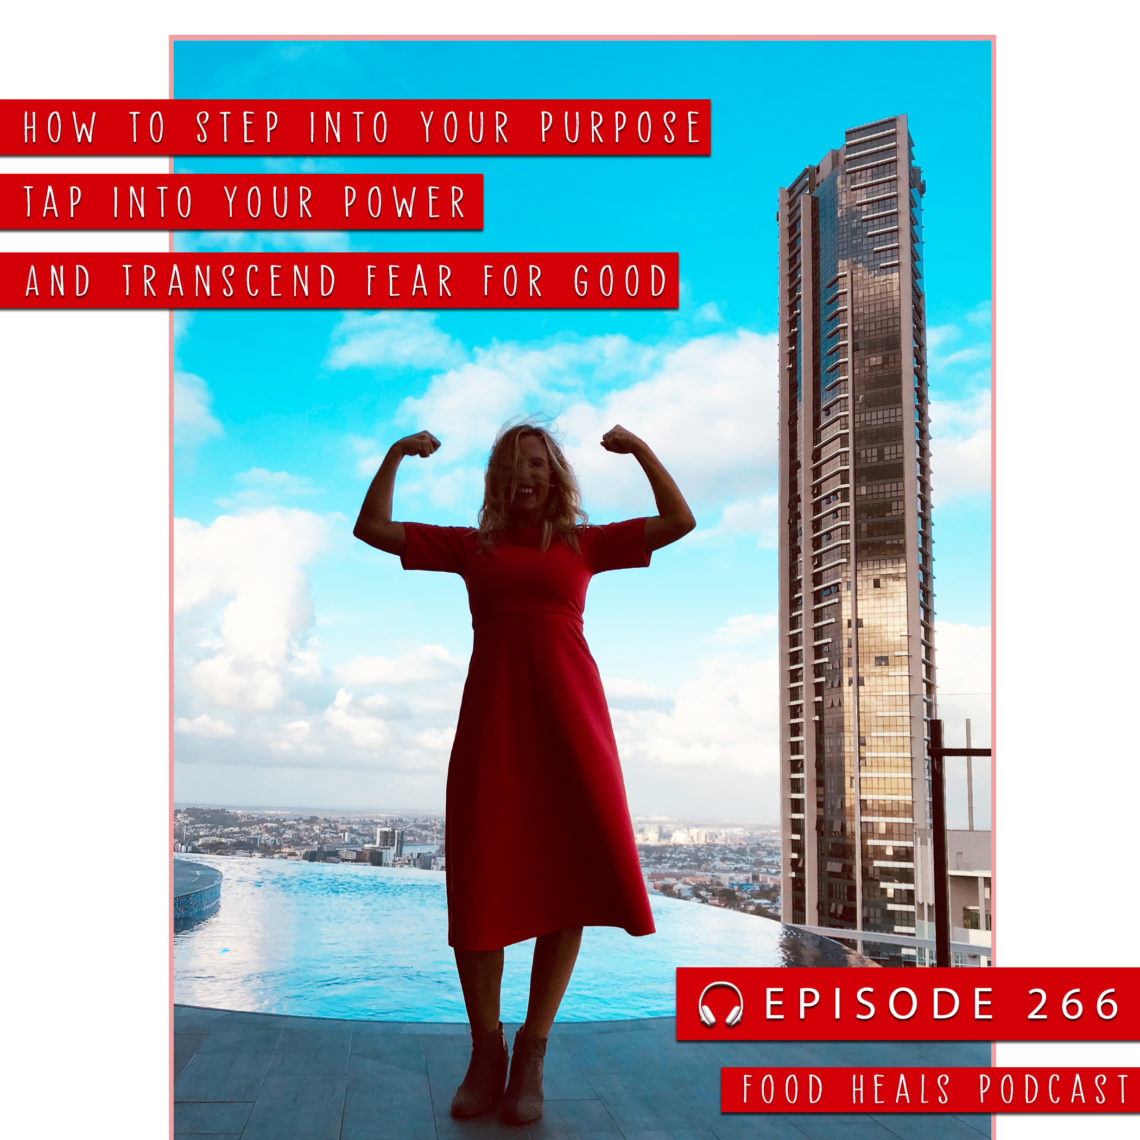 Food Heals Podcast Episode 266: Allison Melody's Story: How to Step Into Your Purpose, Tap Into Your Power and Transcend Fear For Good